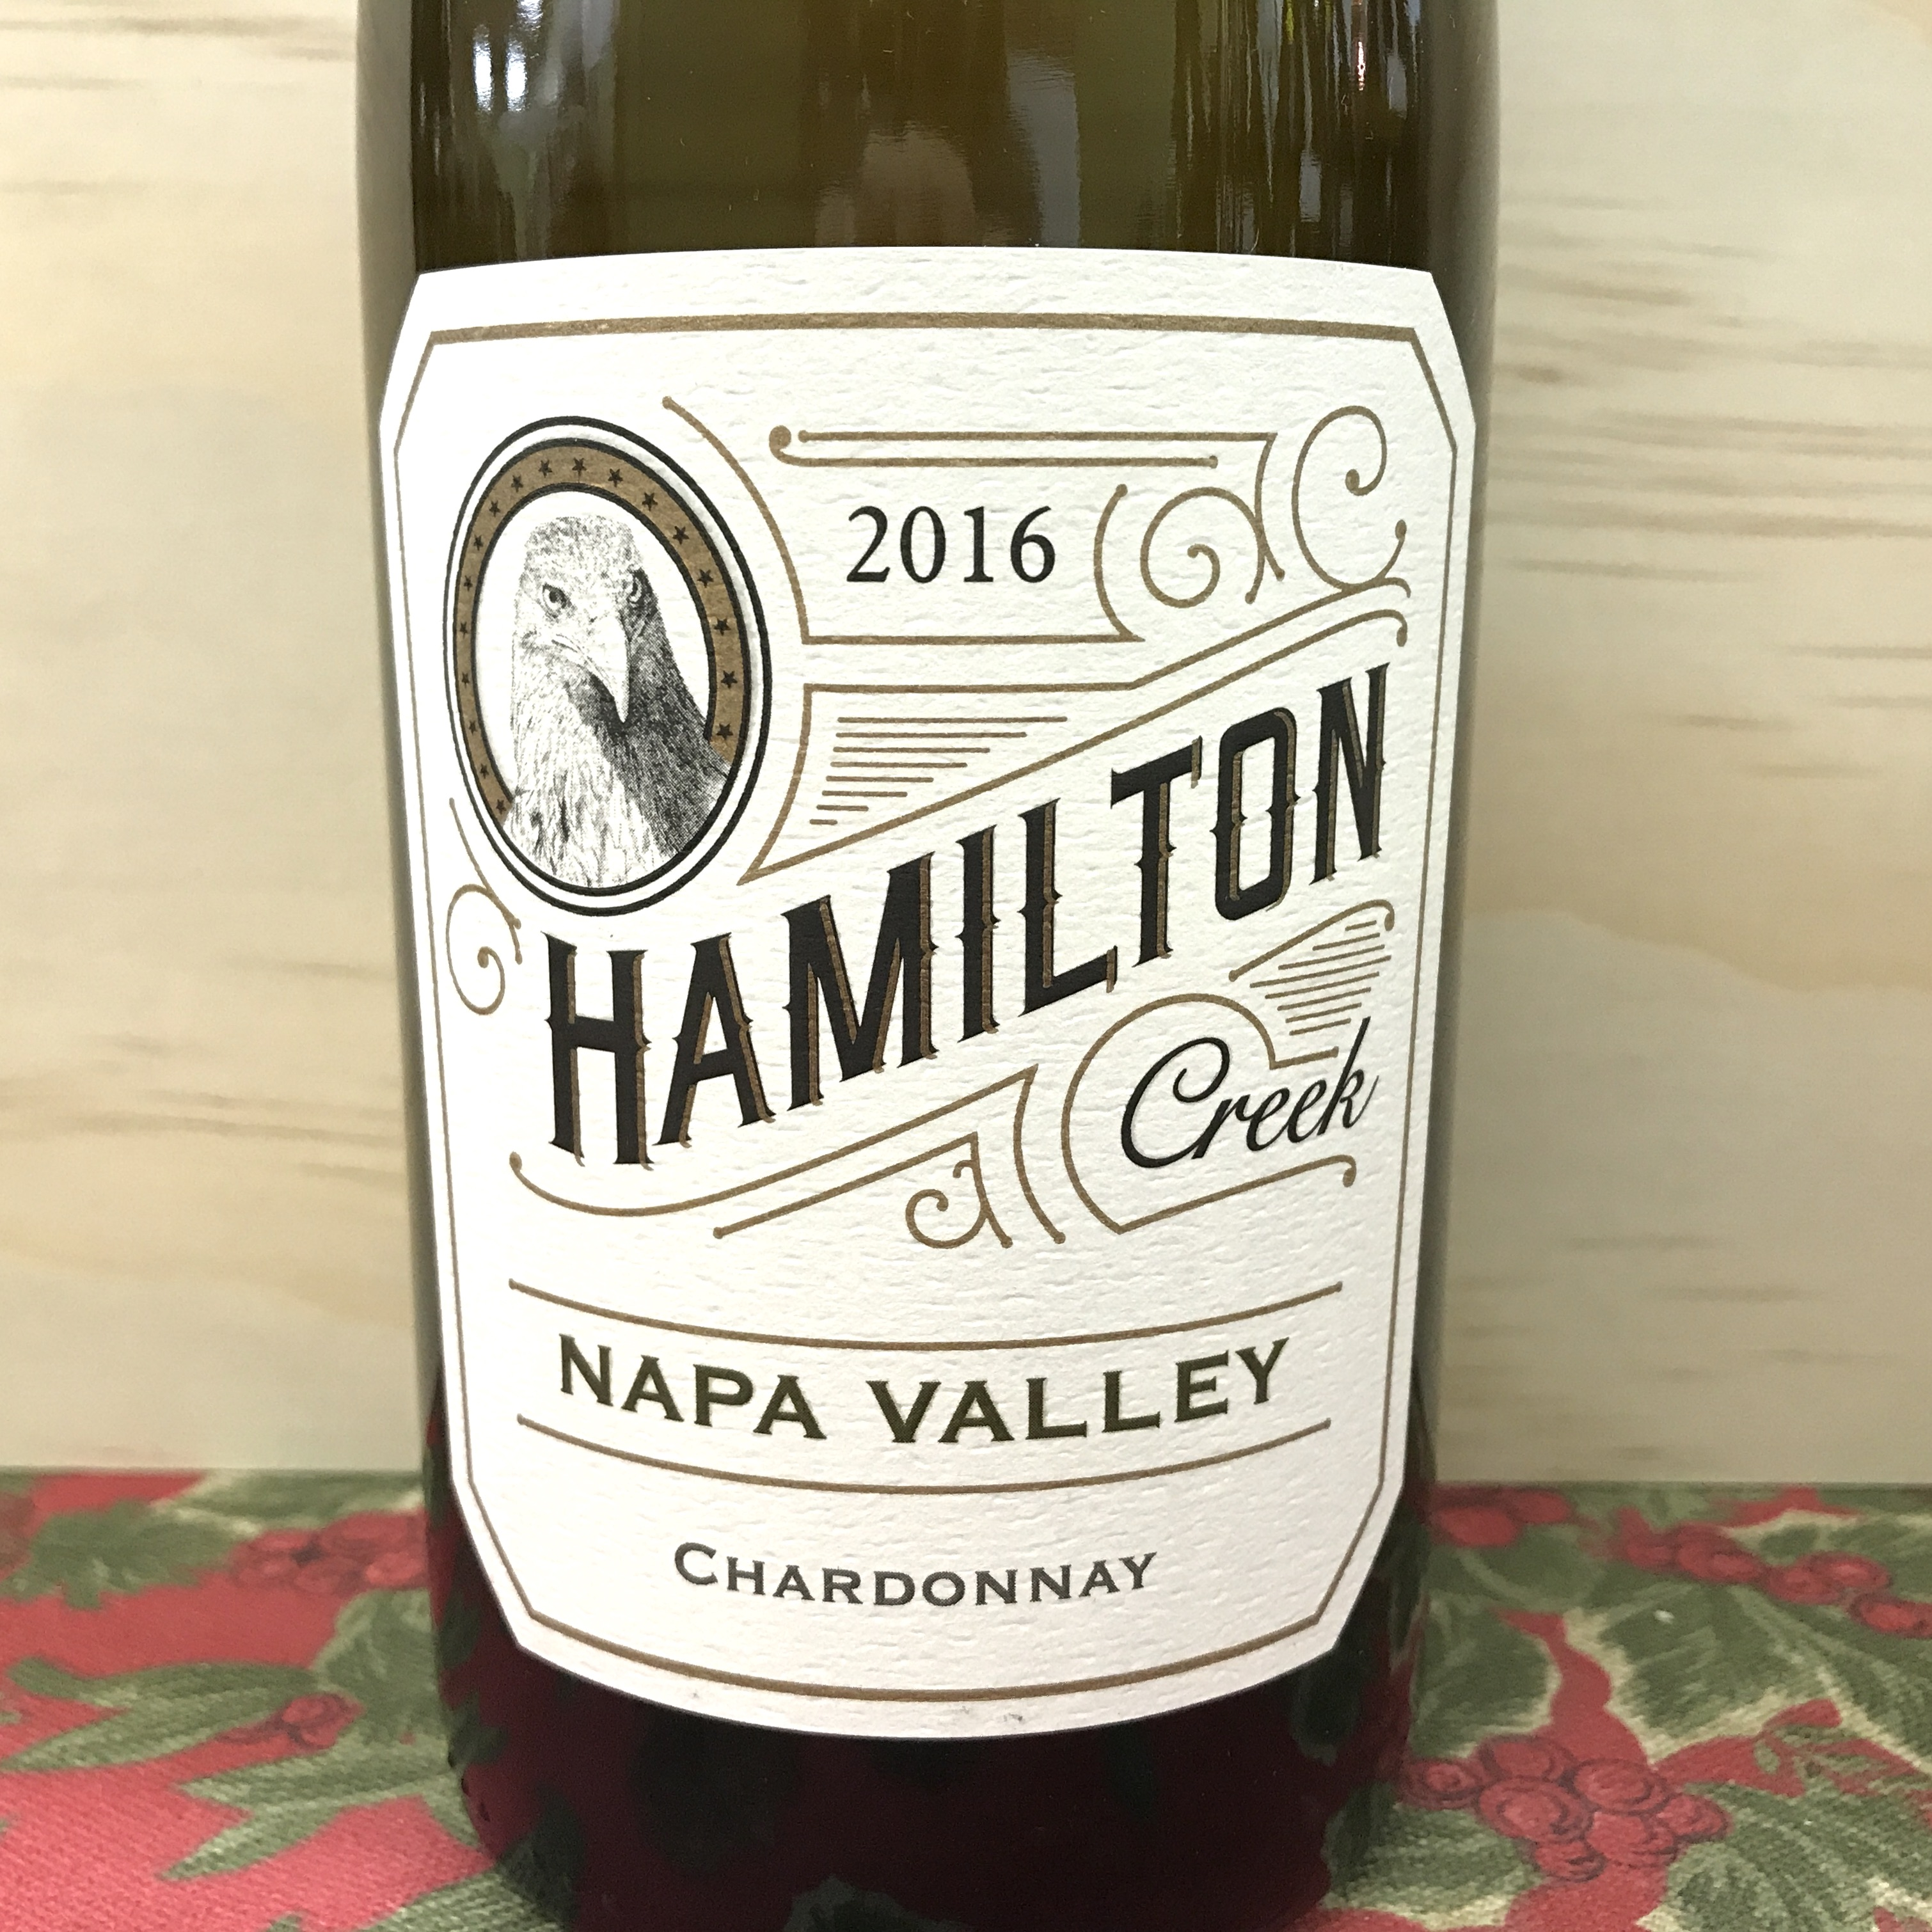 Hamilton Creek Napa Valley Chardonnay 2016